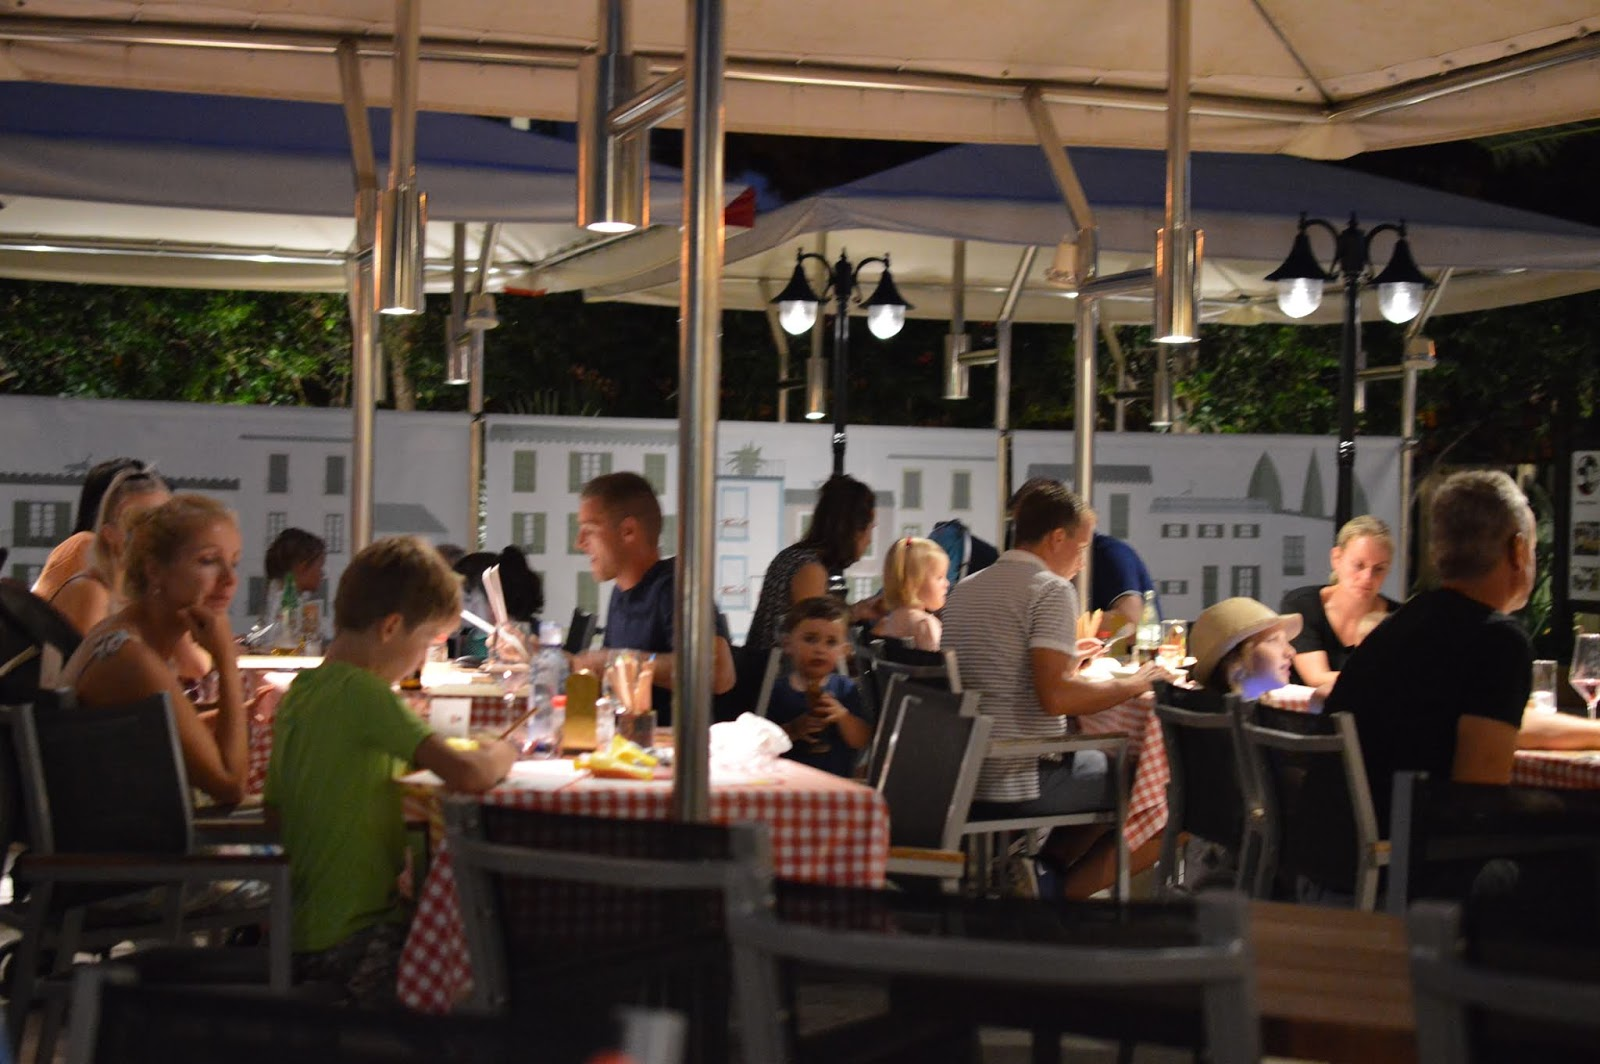 Pirates Village Santa Ponsa | Jet 2 Holidays Review  - Blockhouse steak restaurant terrace